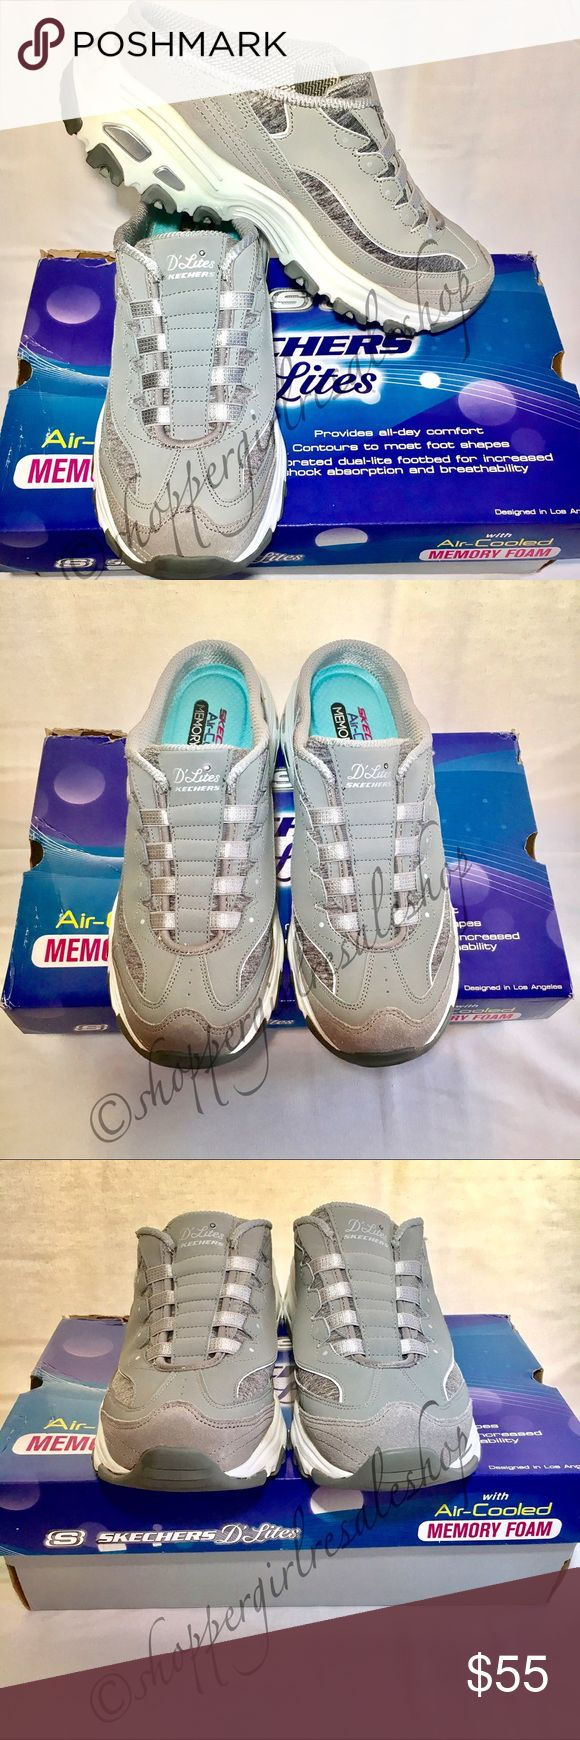 JUST IN!! Gray SKECHERS D'LITES Sneakers ✨LIKE NEW✨ Women's Gray and White SKECHERS D'LITES Slide-In Sneakers, Air-Cooled Memory Foam. Super cute and sporty. Excellent condition, no damage. Practically new, only worn on carpet.    ~Thanks for shopping by  and taking a look. ❗️**Please N Trades, N Holds, N Low Ball offers.** ❗️Thank you!** {Smoke-Free Home!} Skechers Shoes Sneakers